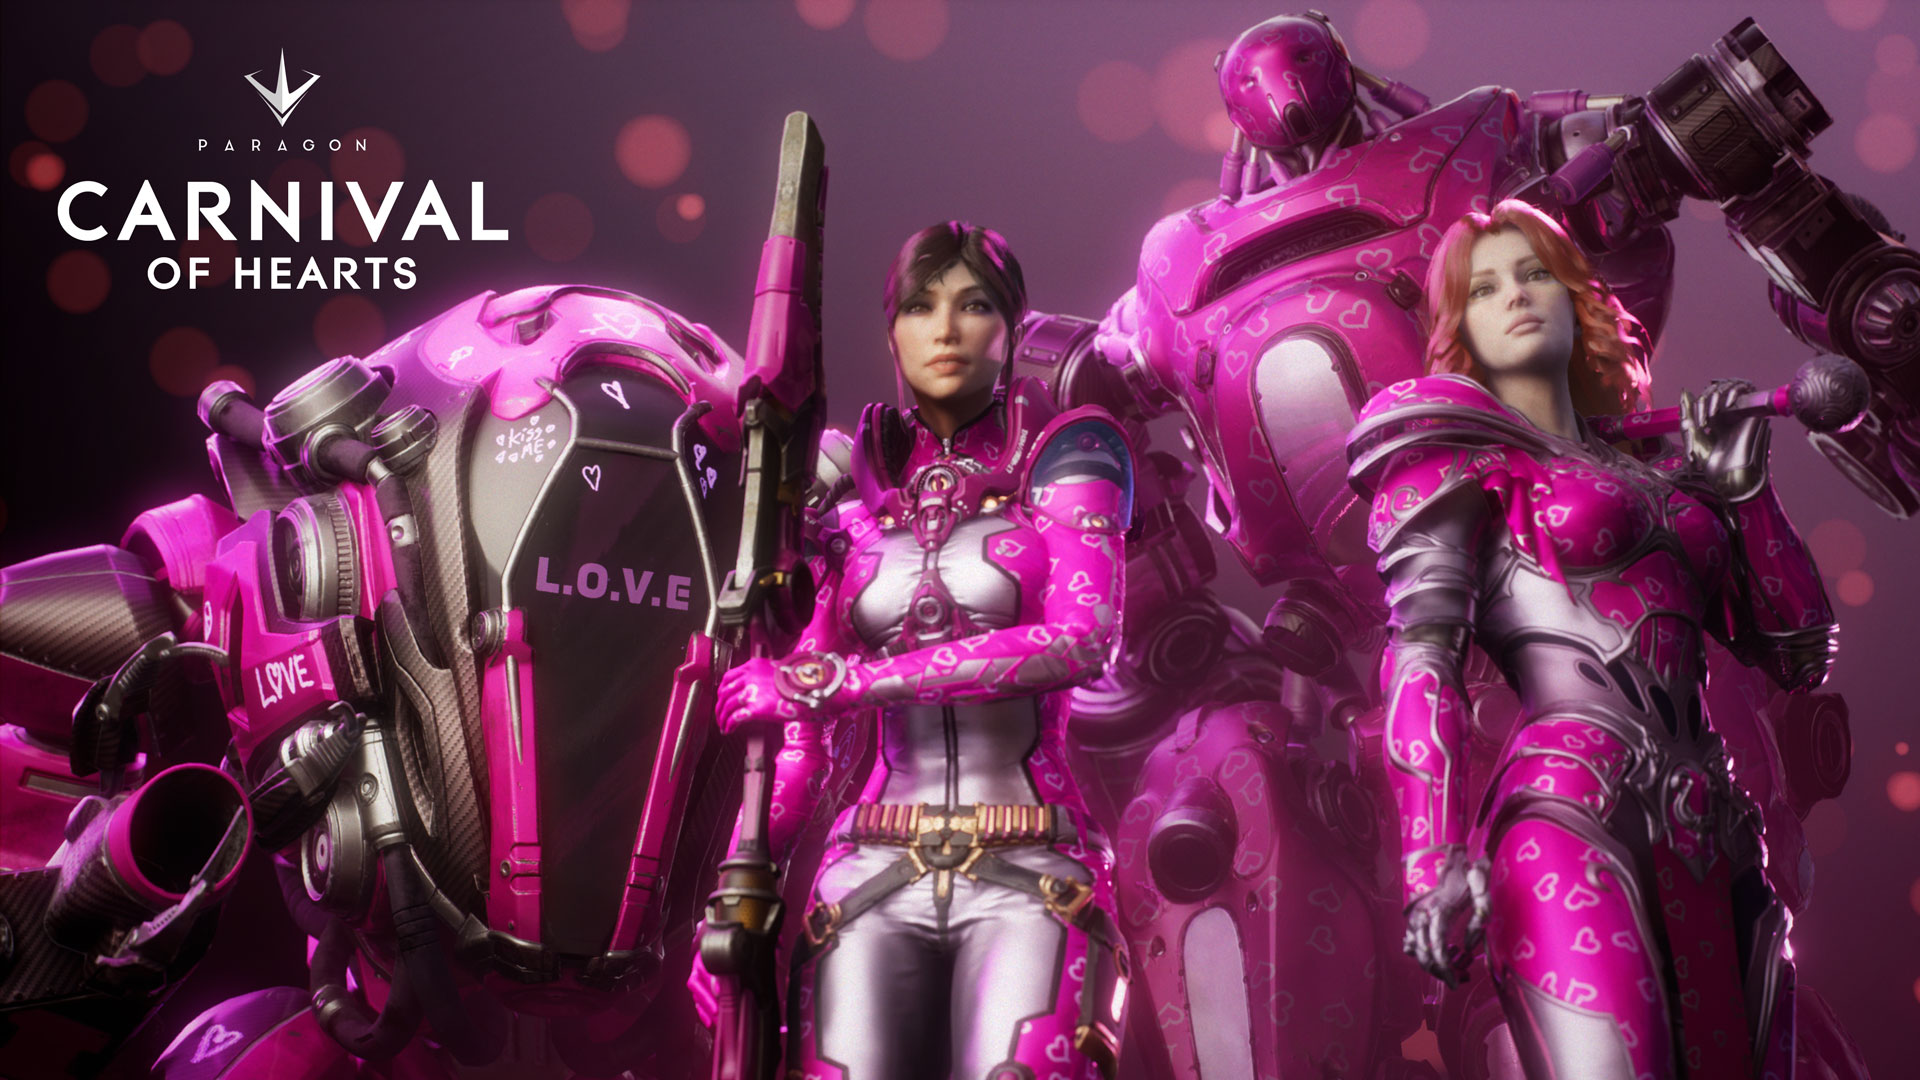 Paragon%2Fblog%2Fcarnival-of-hearts-has-arrived%2FCarnivalofHearts_Screenshot-1920x1080-f7244c693151be39c48d653ee9633e46369a2834